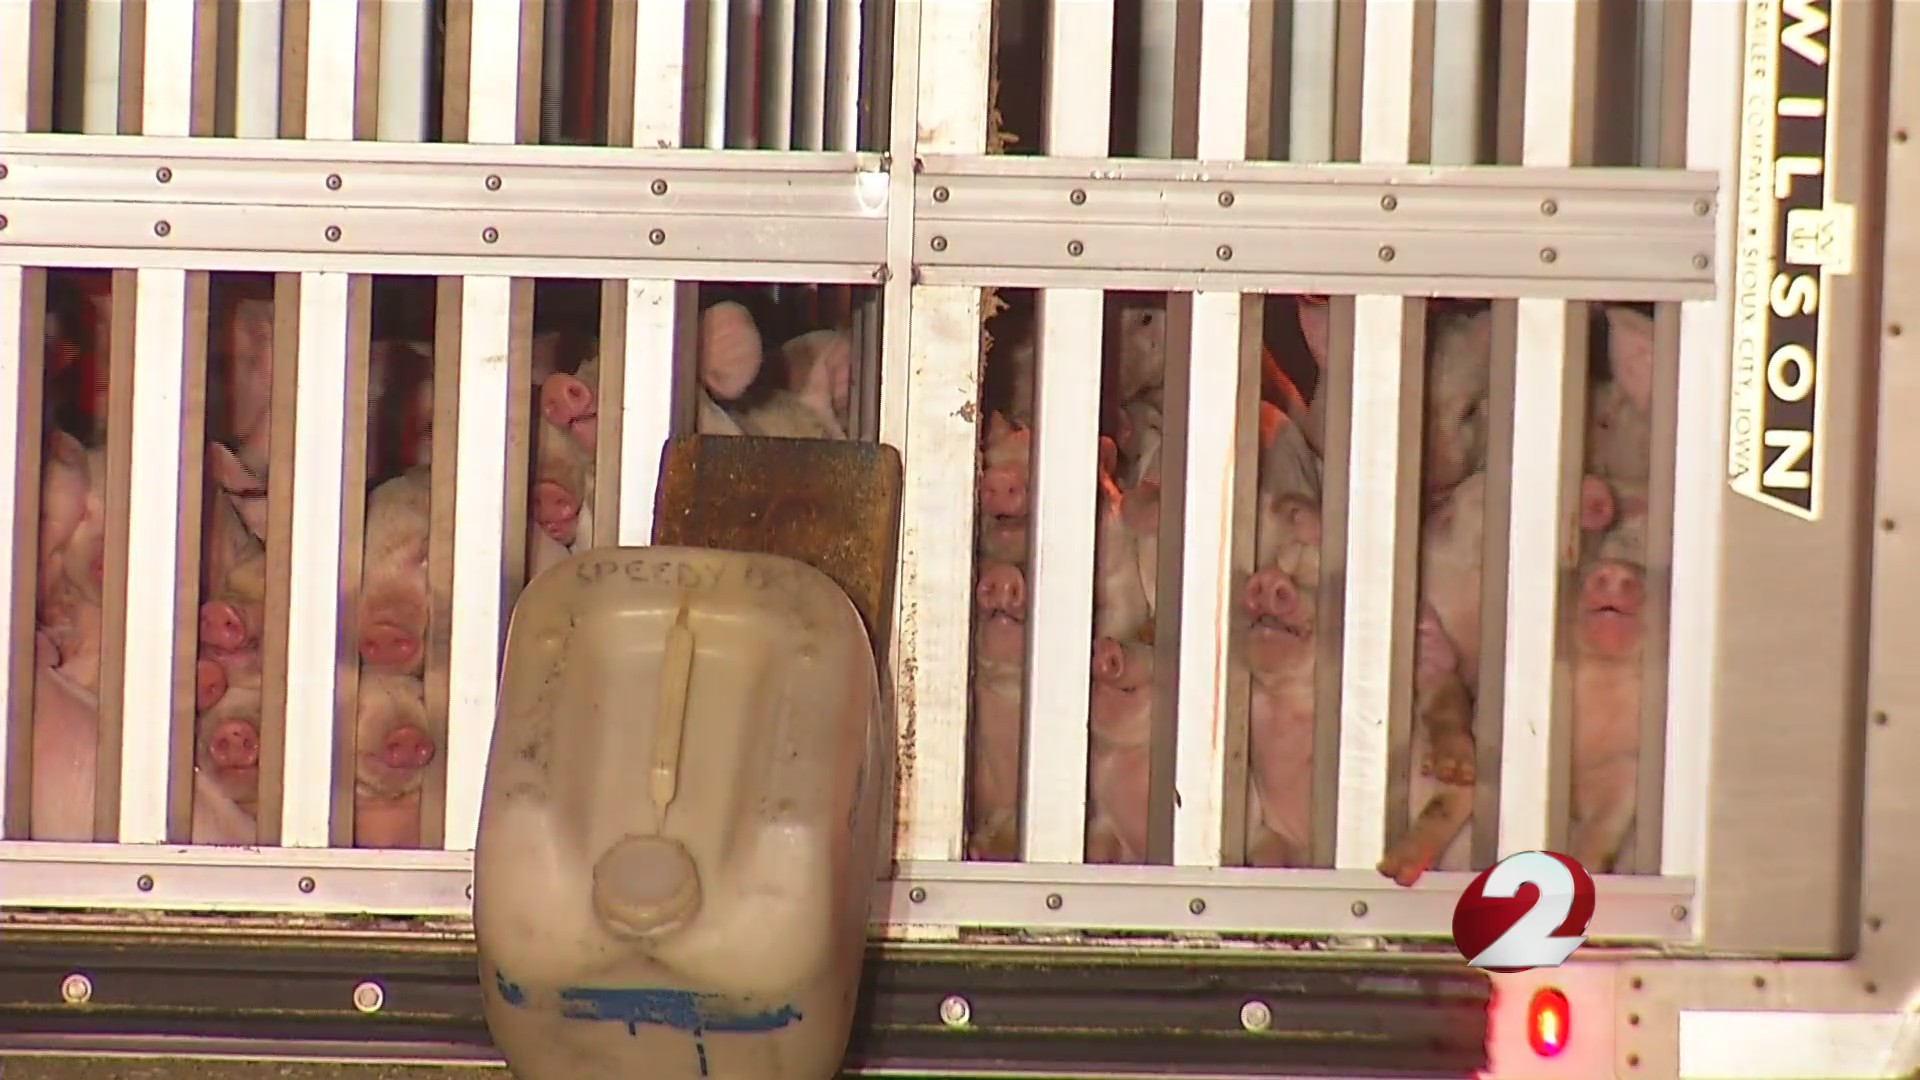 Truck hauling piglets overturns on highway ramp